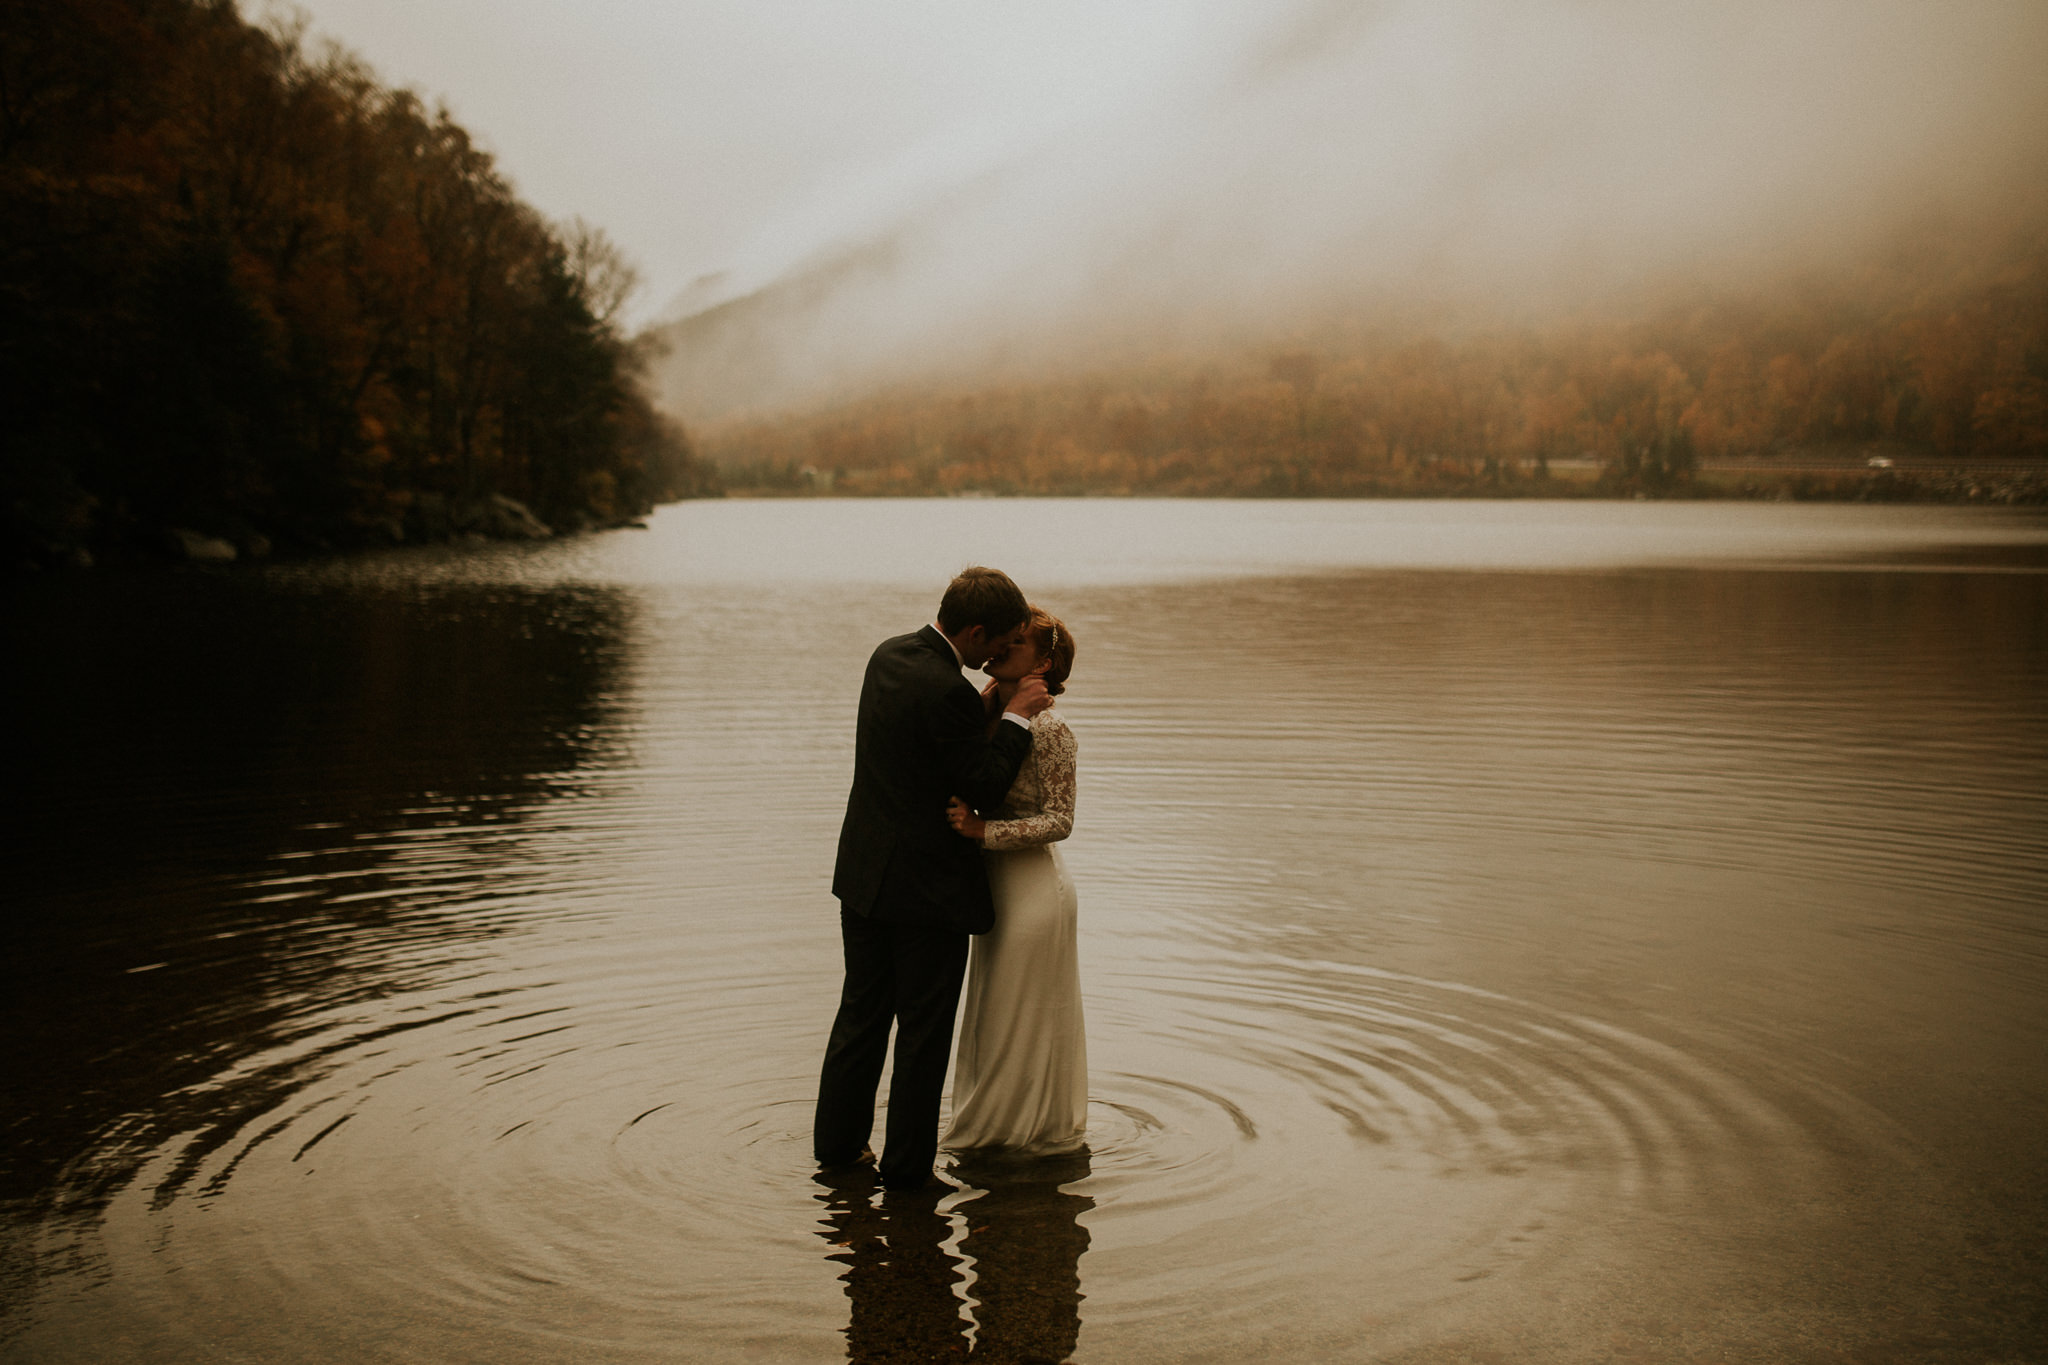 How to pick the perfect elopement dress - how to pick a dress for your elopement - what to know before picking your Elopement dress - best adventurous wedding dresses - best elopement dresses - best hiking elopement dress choices - hiking elopement dress - adventurous wedding dress - bhldn - Chantel Lauren - grace loves lace- lure bridals - flora bridal - Maggie sottero designs - galia lahav - berta - aviv wedding studio - elie Saab bridal - pallas couture -